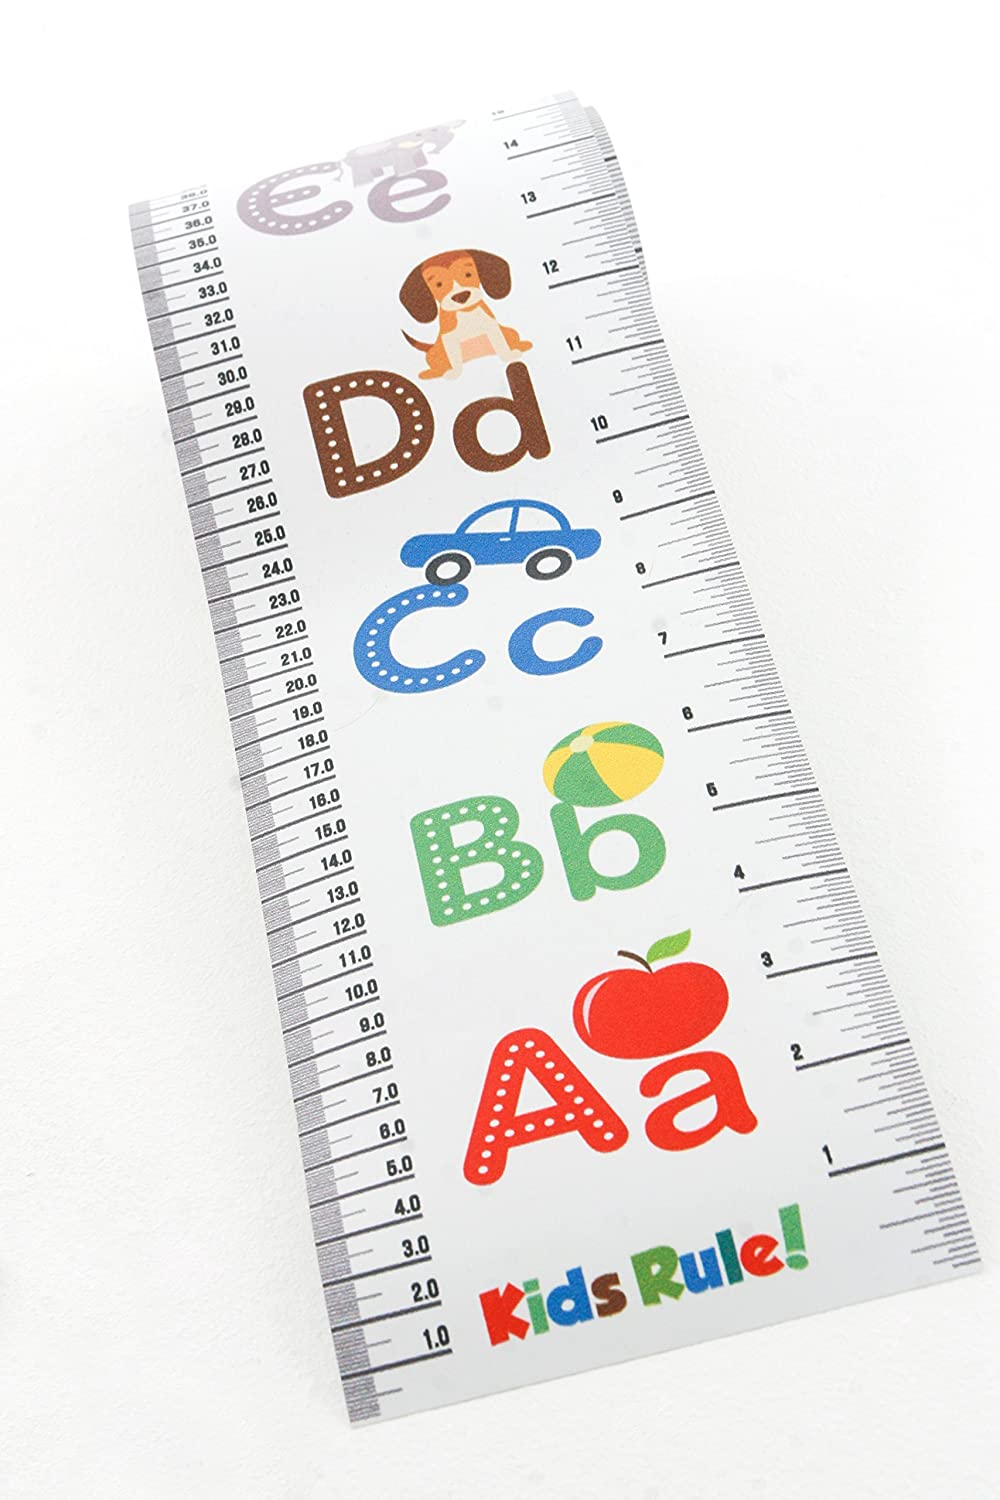 Kids Rule Alphabet Plastic Roll-Up Height Measuring Chart Choice Of 3 Bright Designs Measures From Birth To Adult